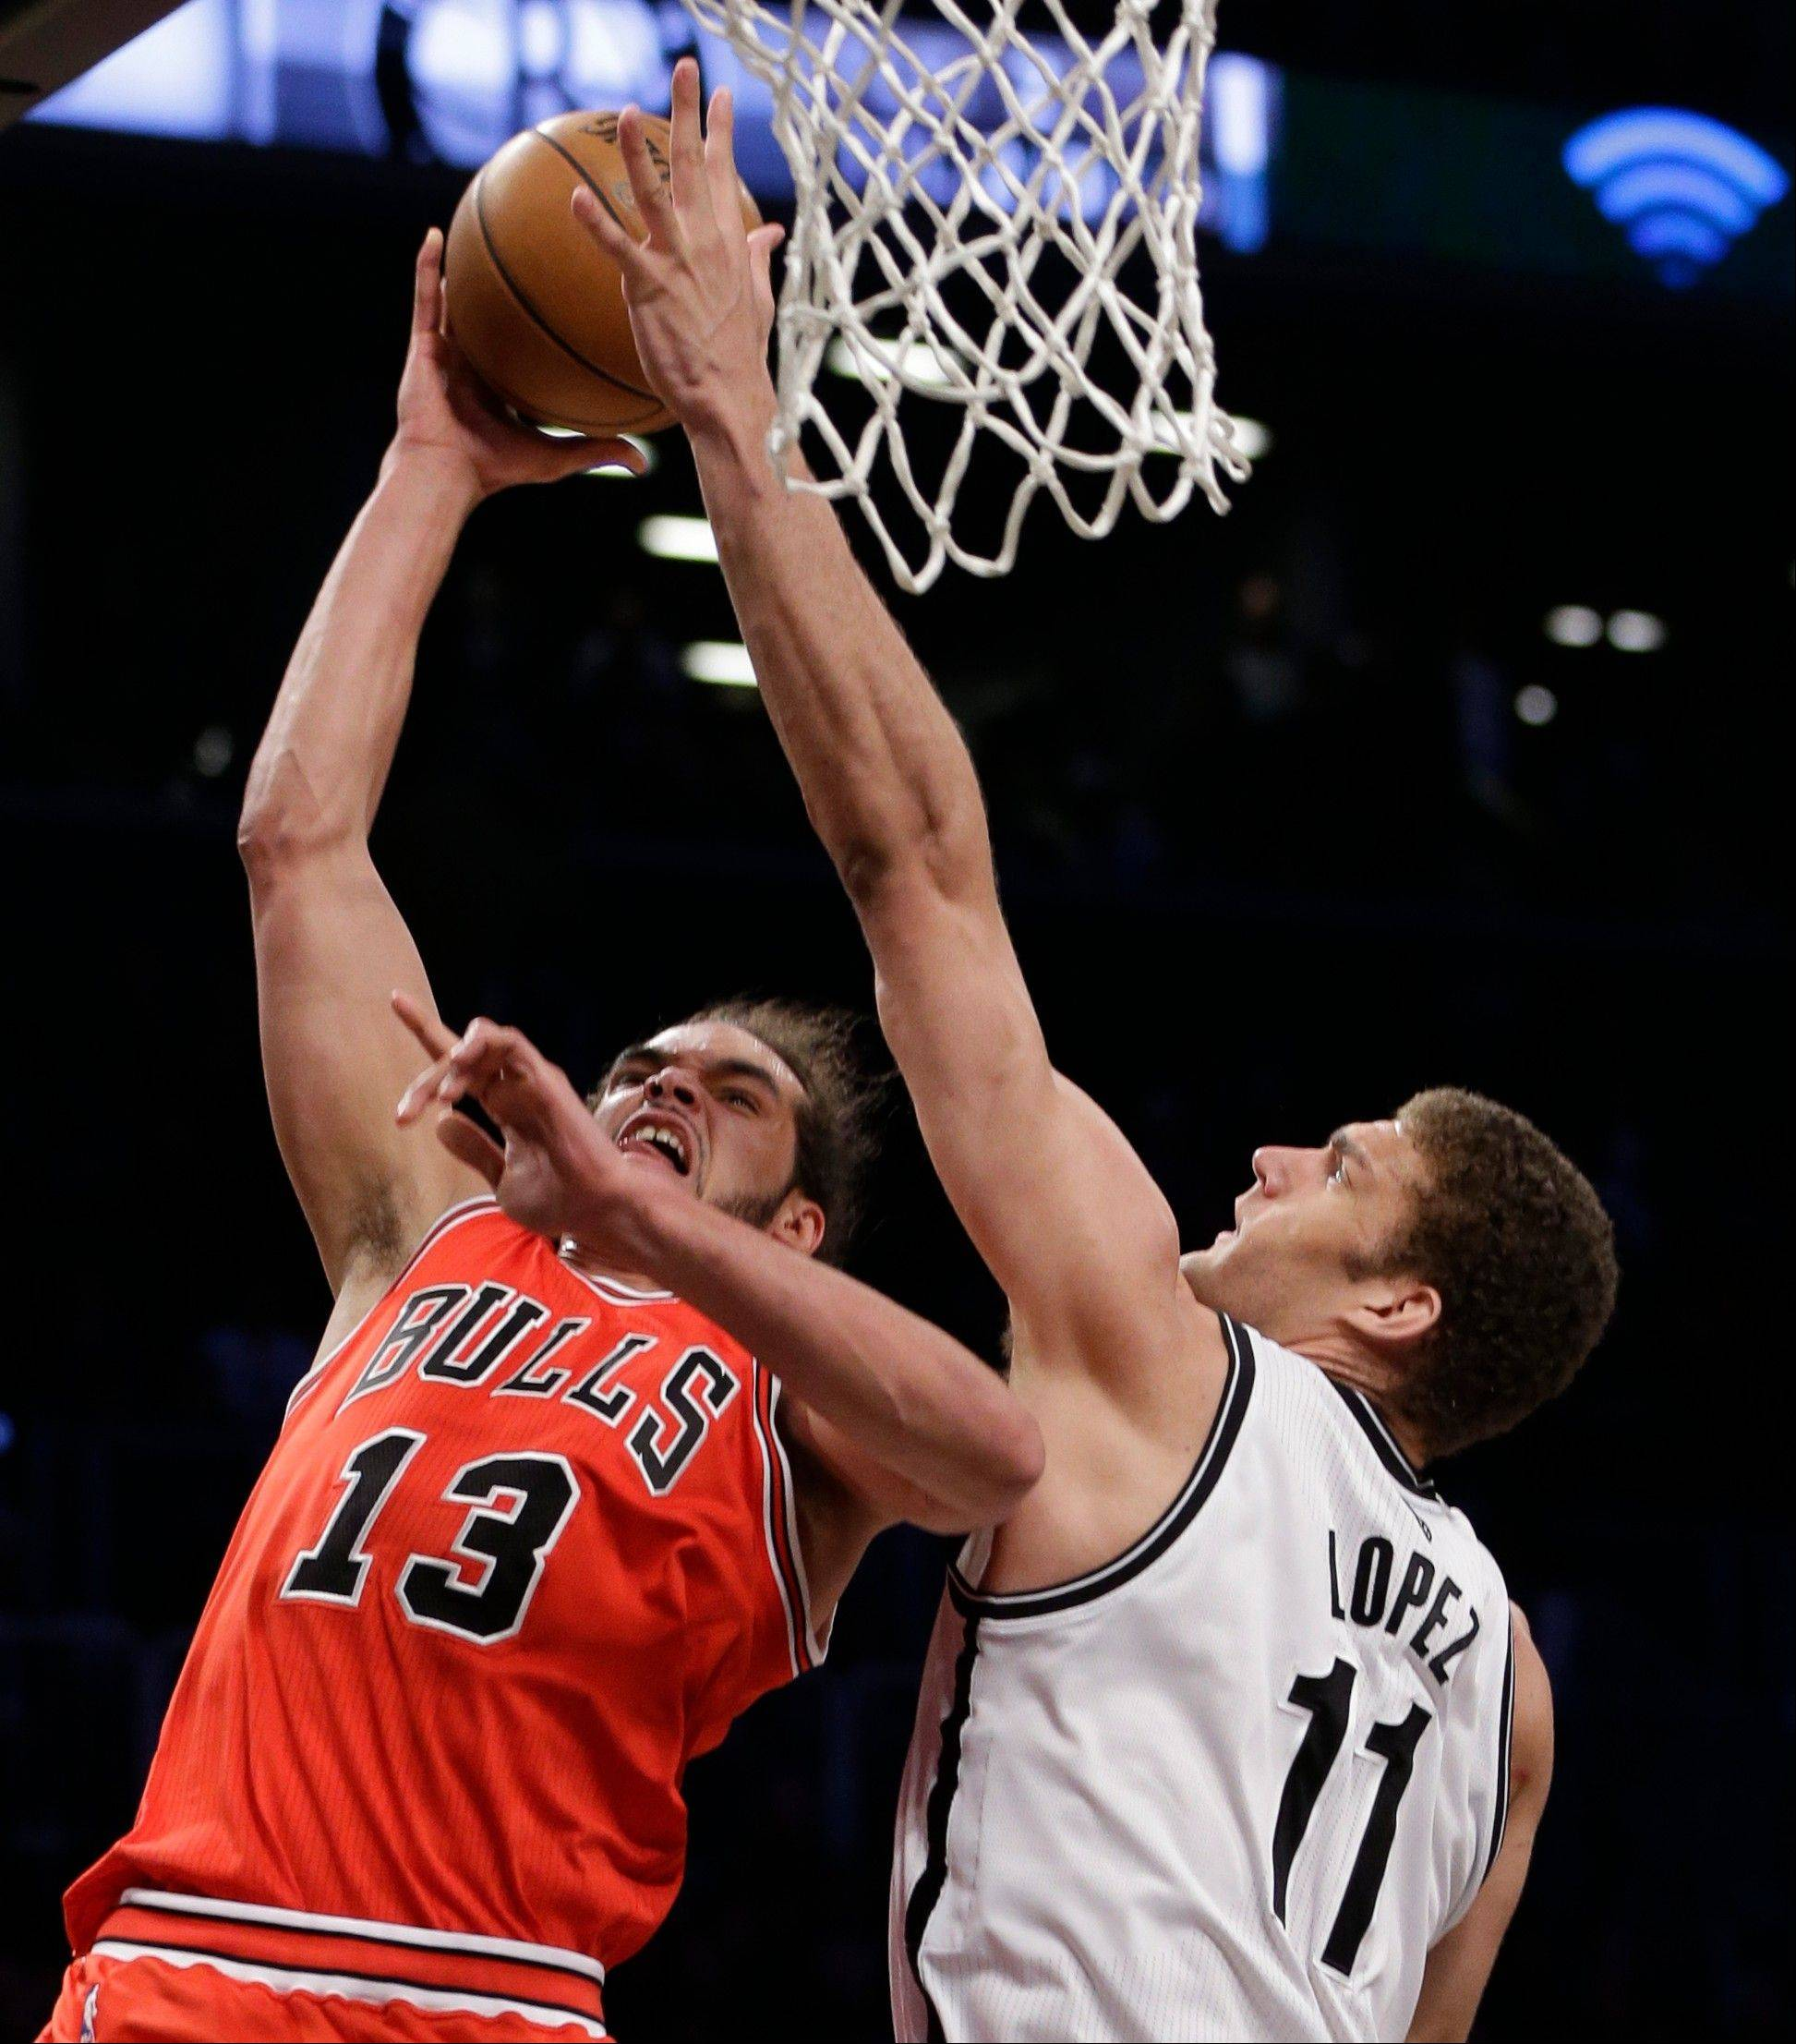 Bulls center Joakim Noah goes strong to the basketball against Nets counterpart Brook Lopez during the second half Monday night.